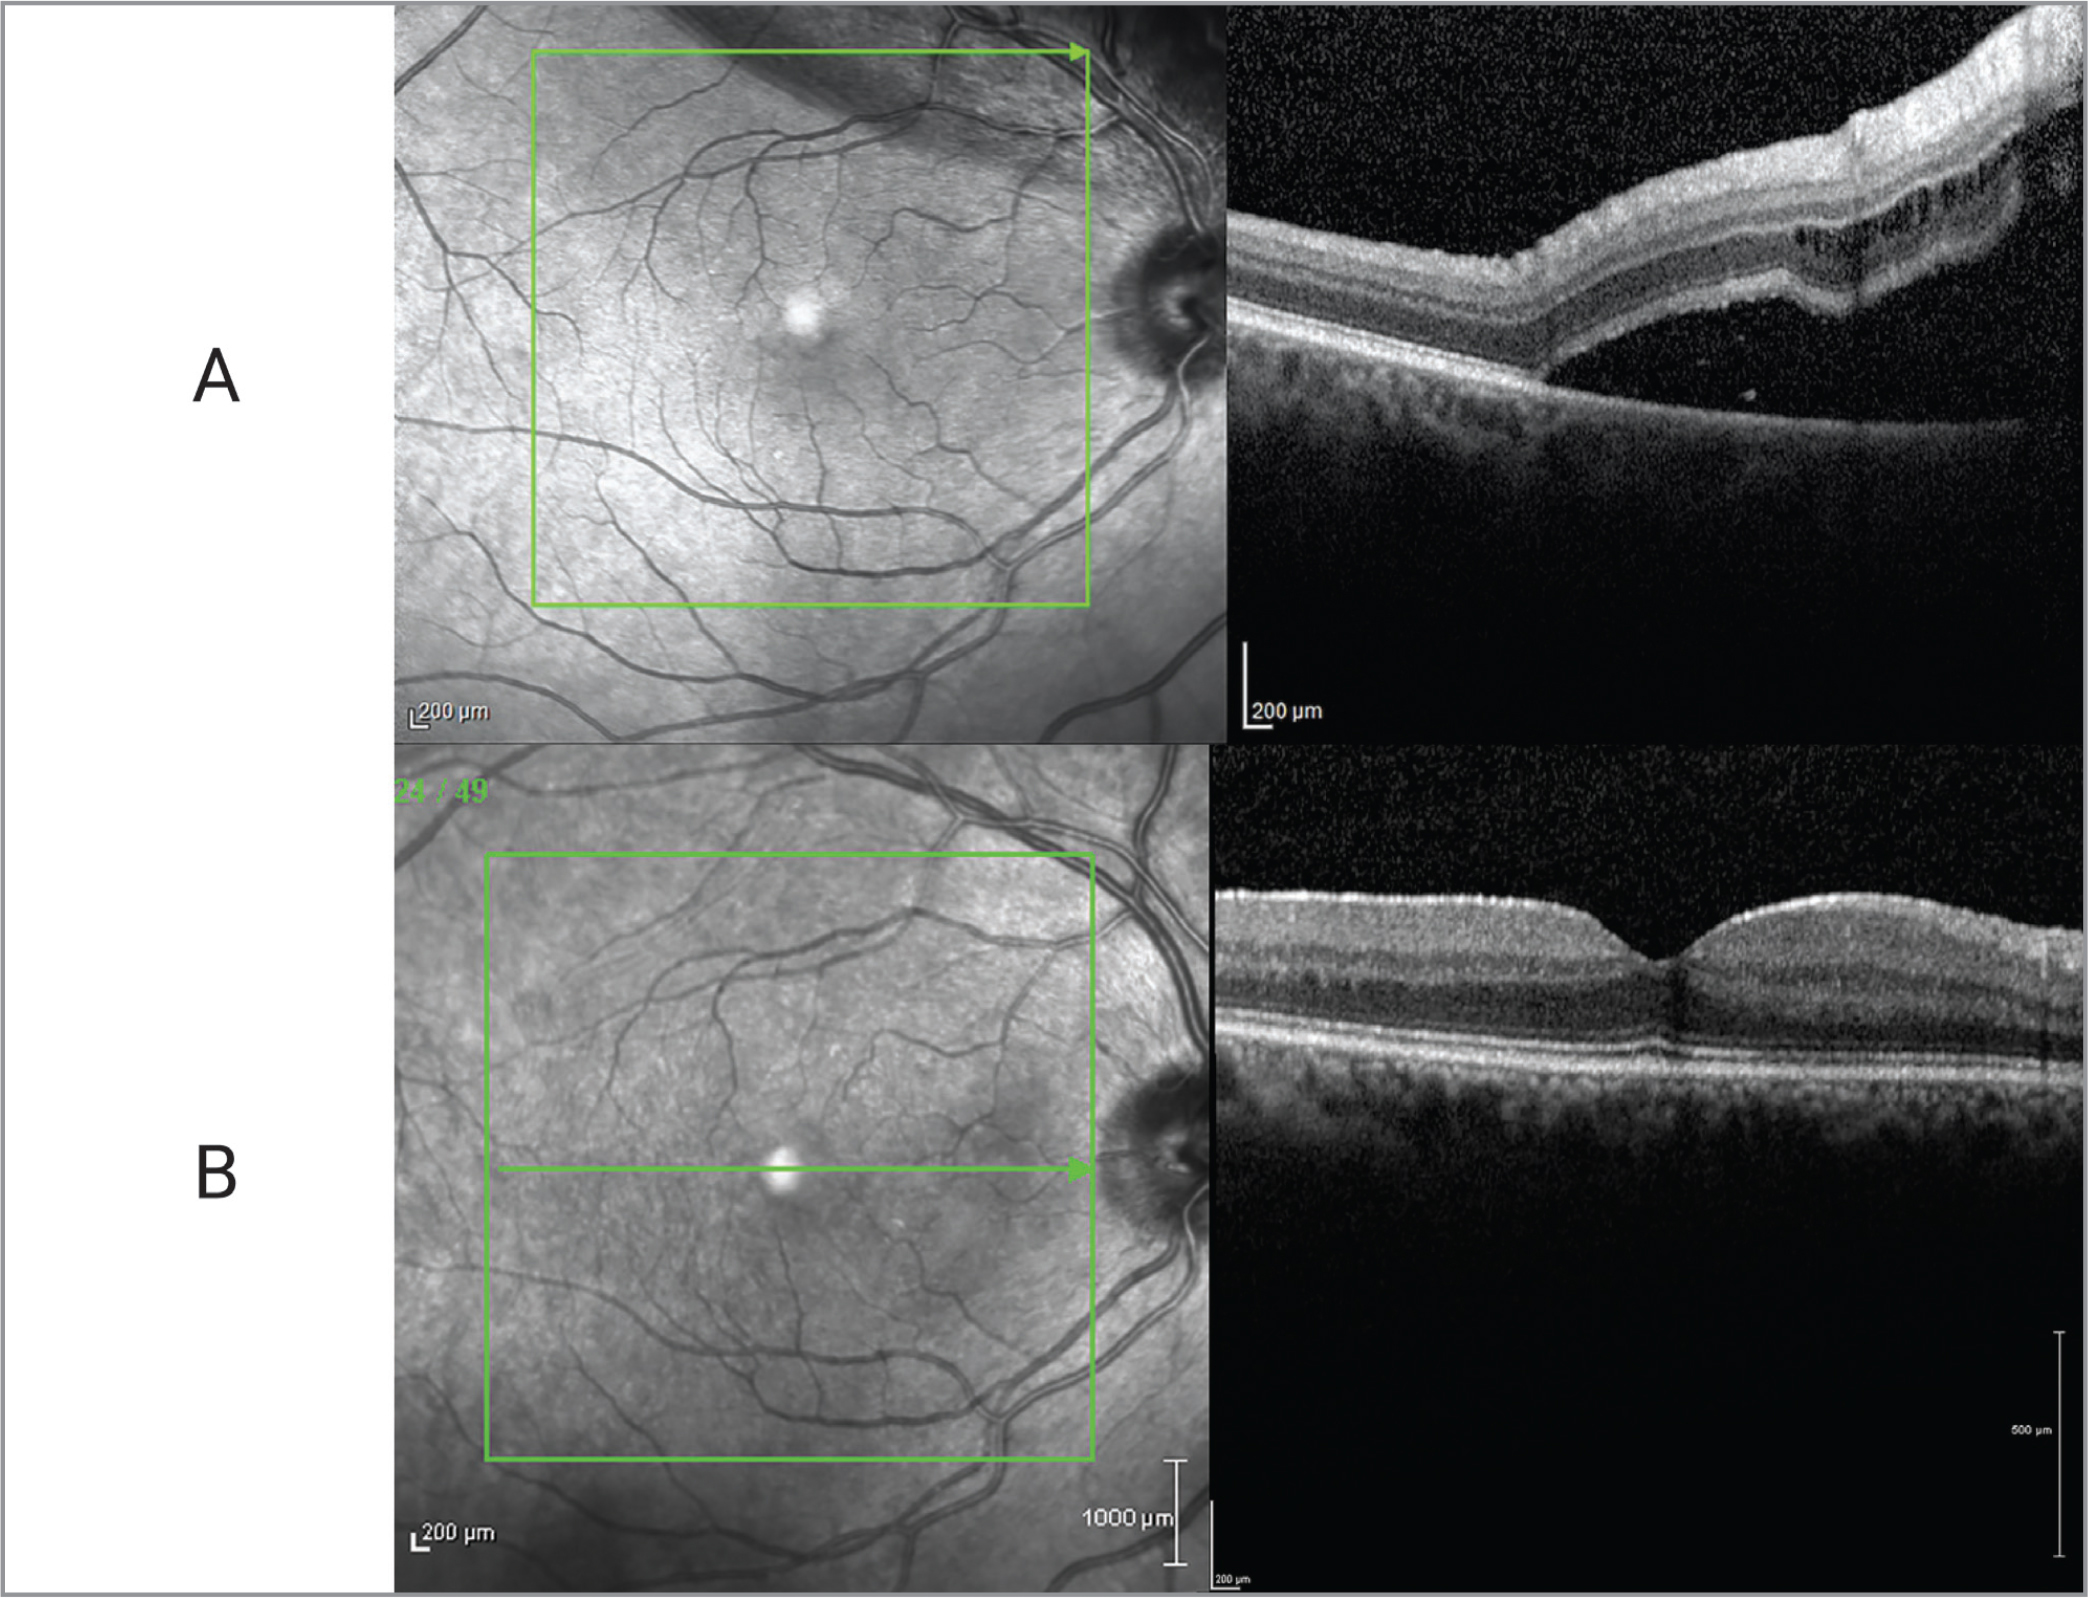 (A) Optical coherence tomography (OCT) demonstrating extended retinal detachment within the arcades and attached fovea on initial presentation. (B) OCT demonstrating healthy foveal contour with distinguished retinal layers at the 4-month postoperative visit.